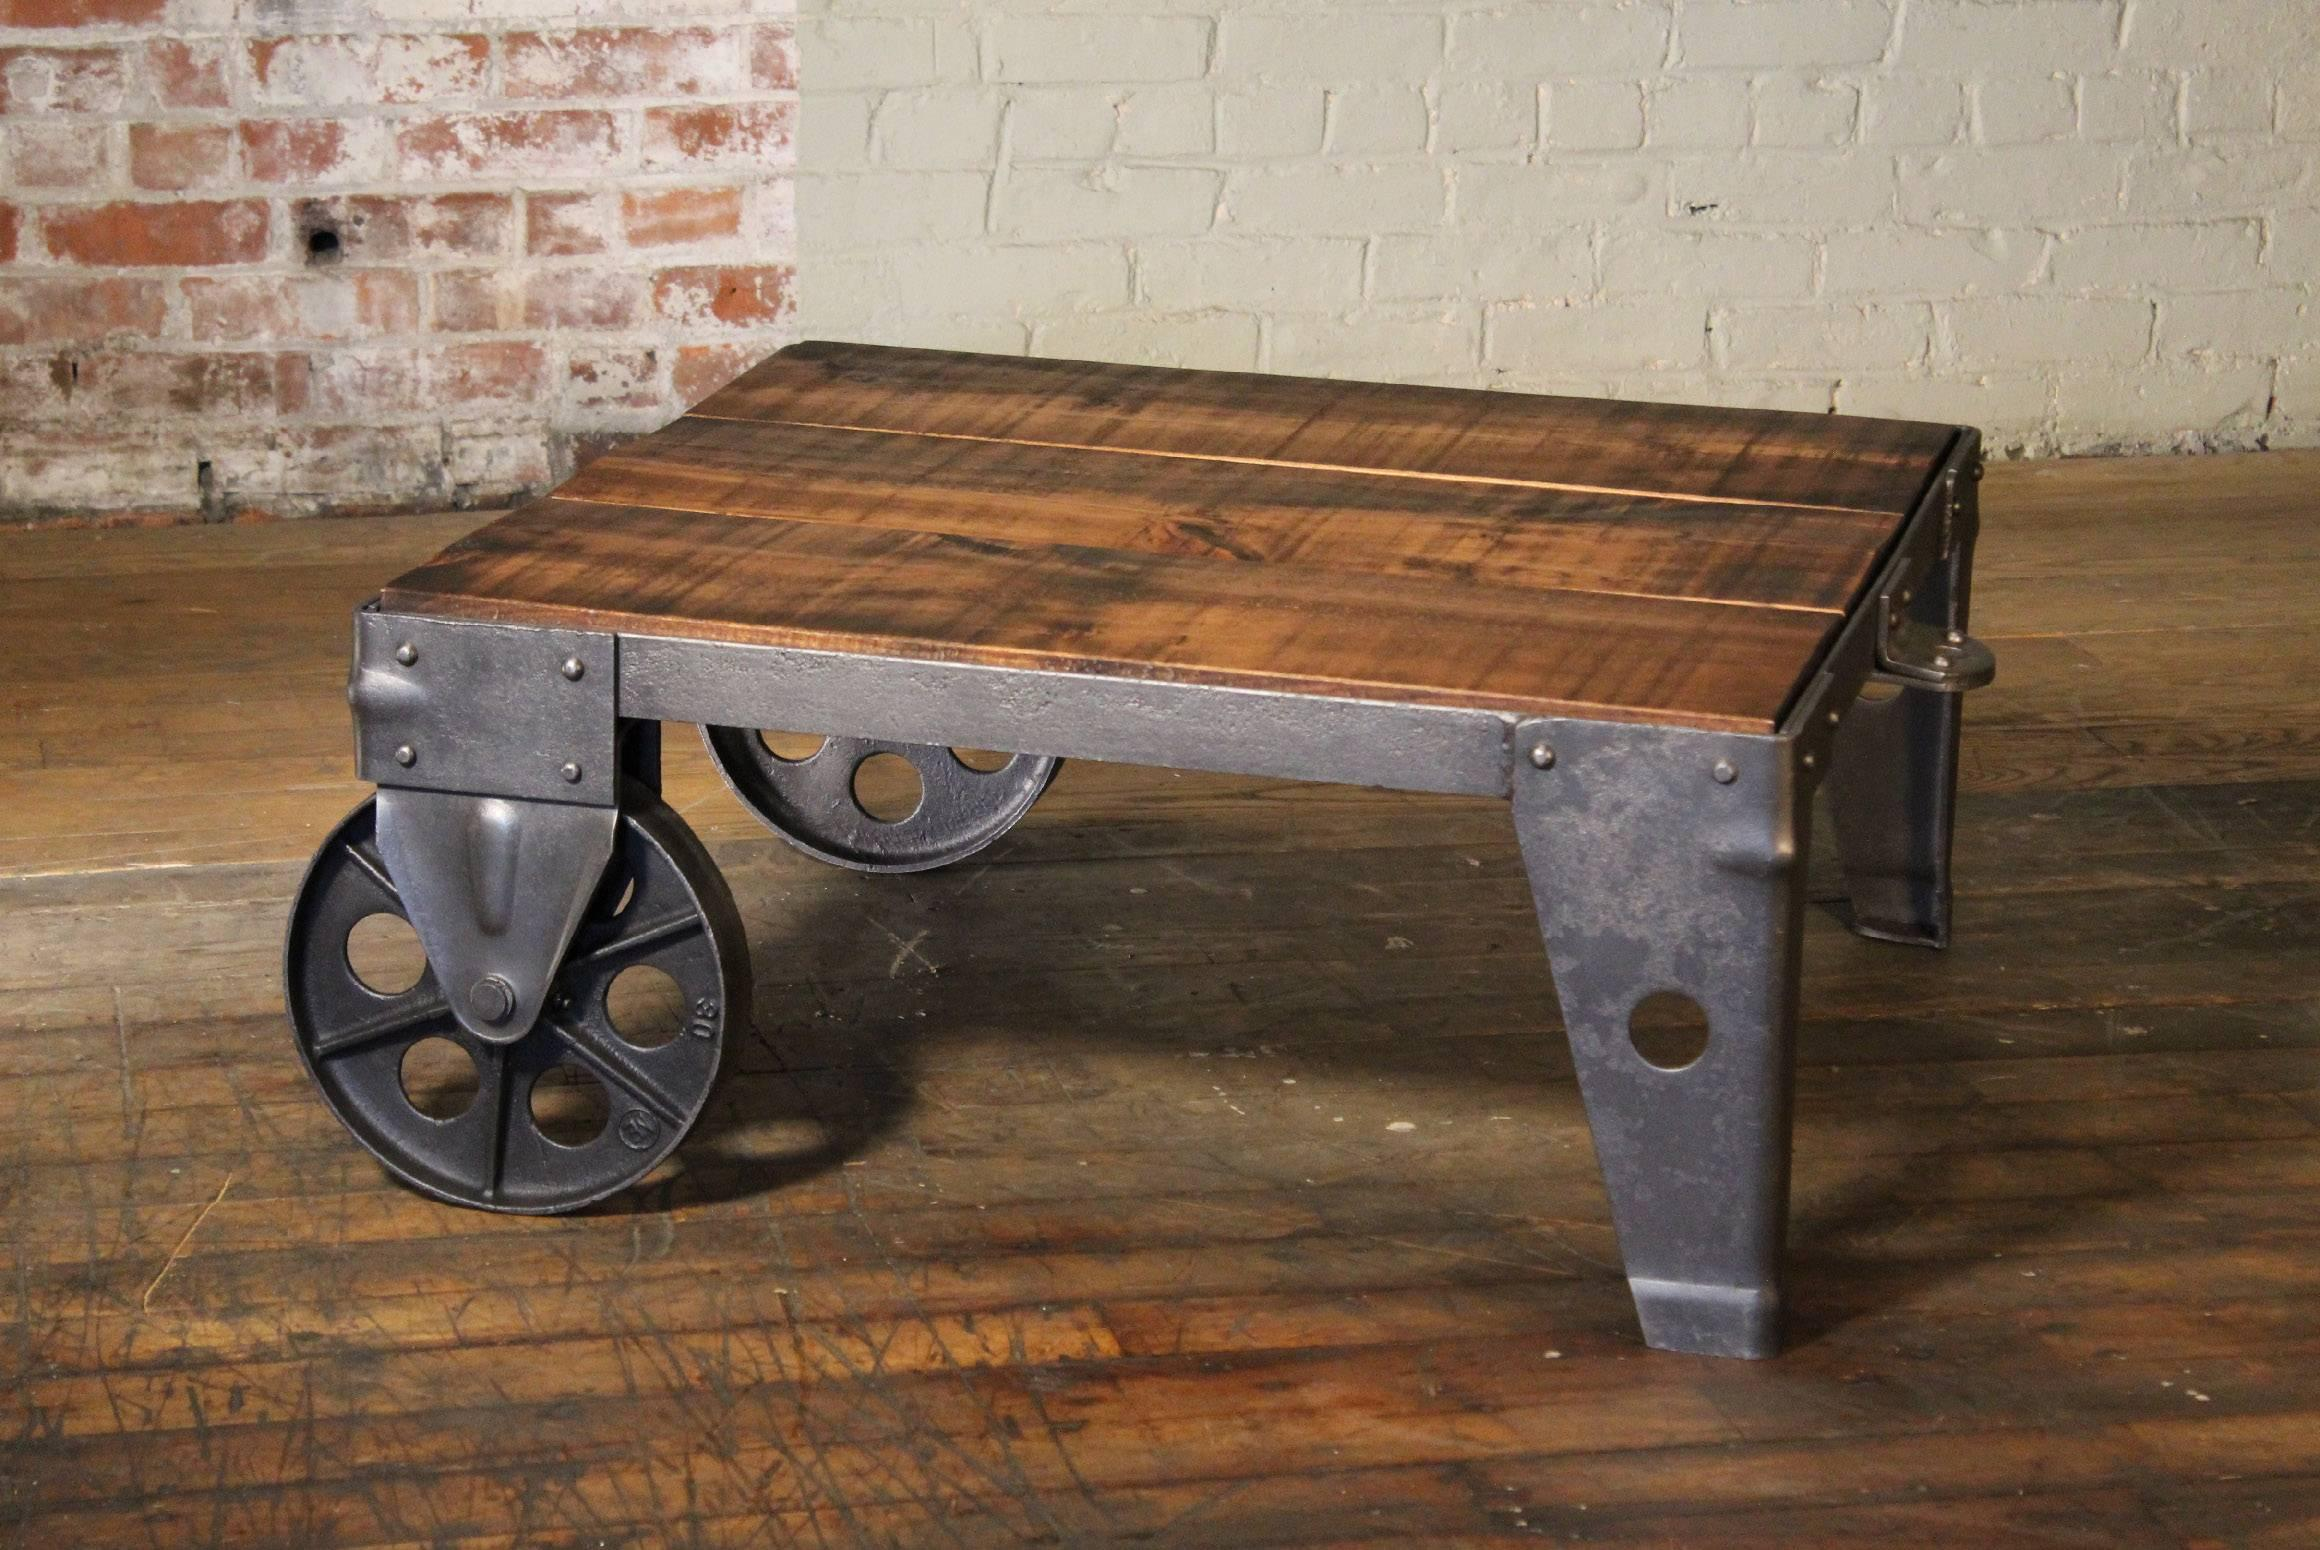 Authentic Vintage Industrial Cart Coffee Table Factory Shop Wood Steel And Iron For Sale At 1stdibs